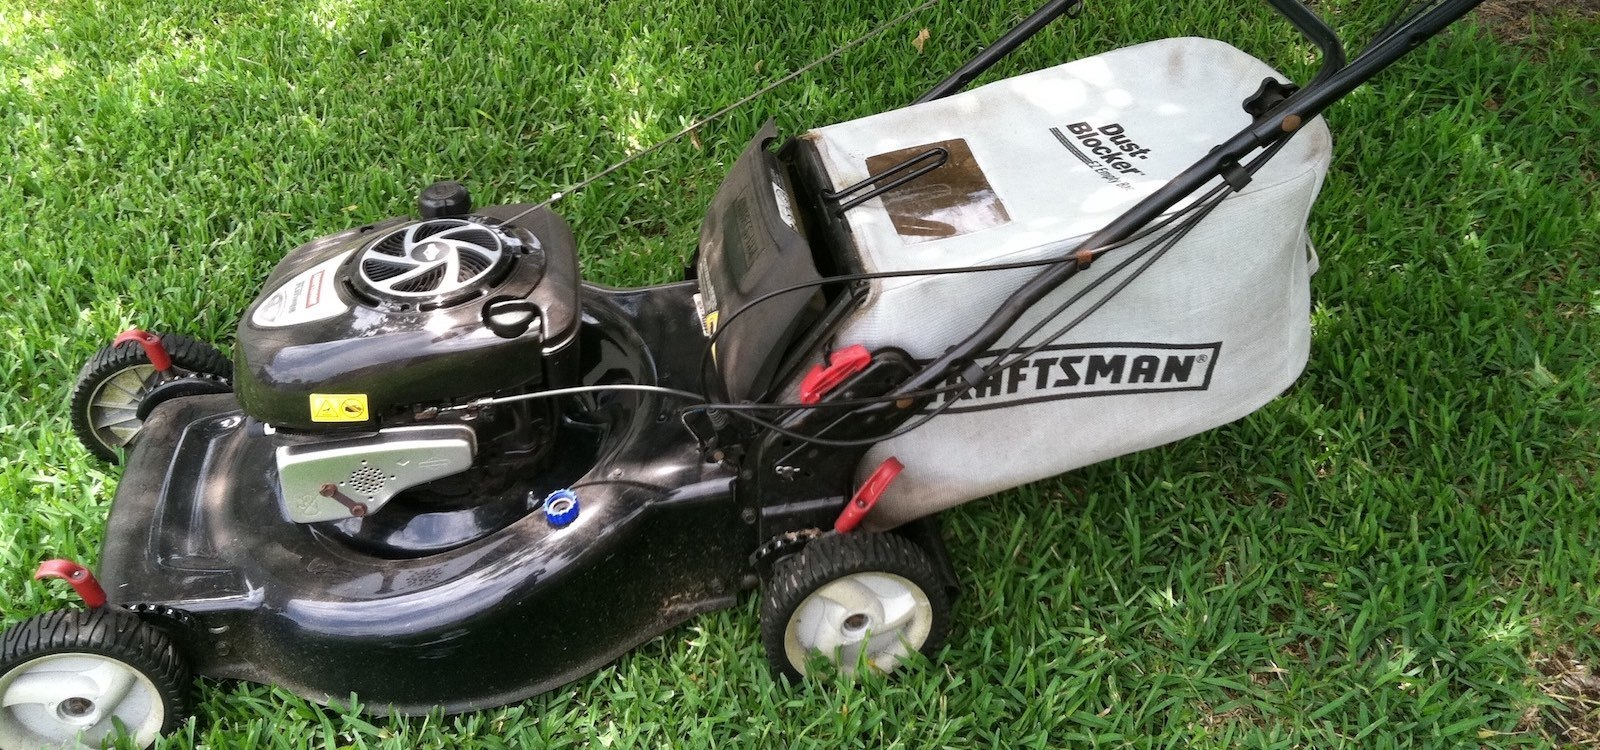 Sears Lawn Mower Self Propelled Tyres2c Craftsman 22 Review